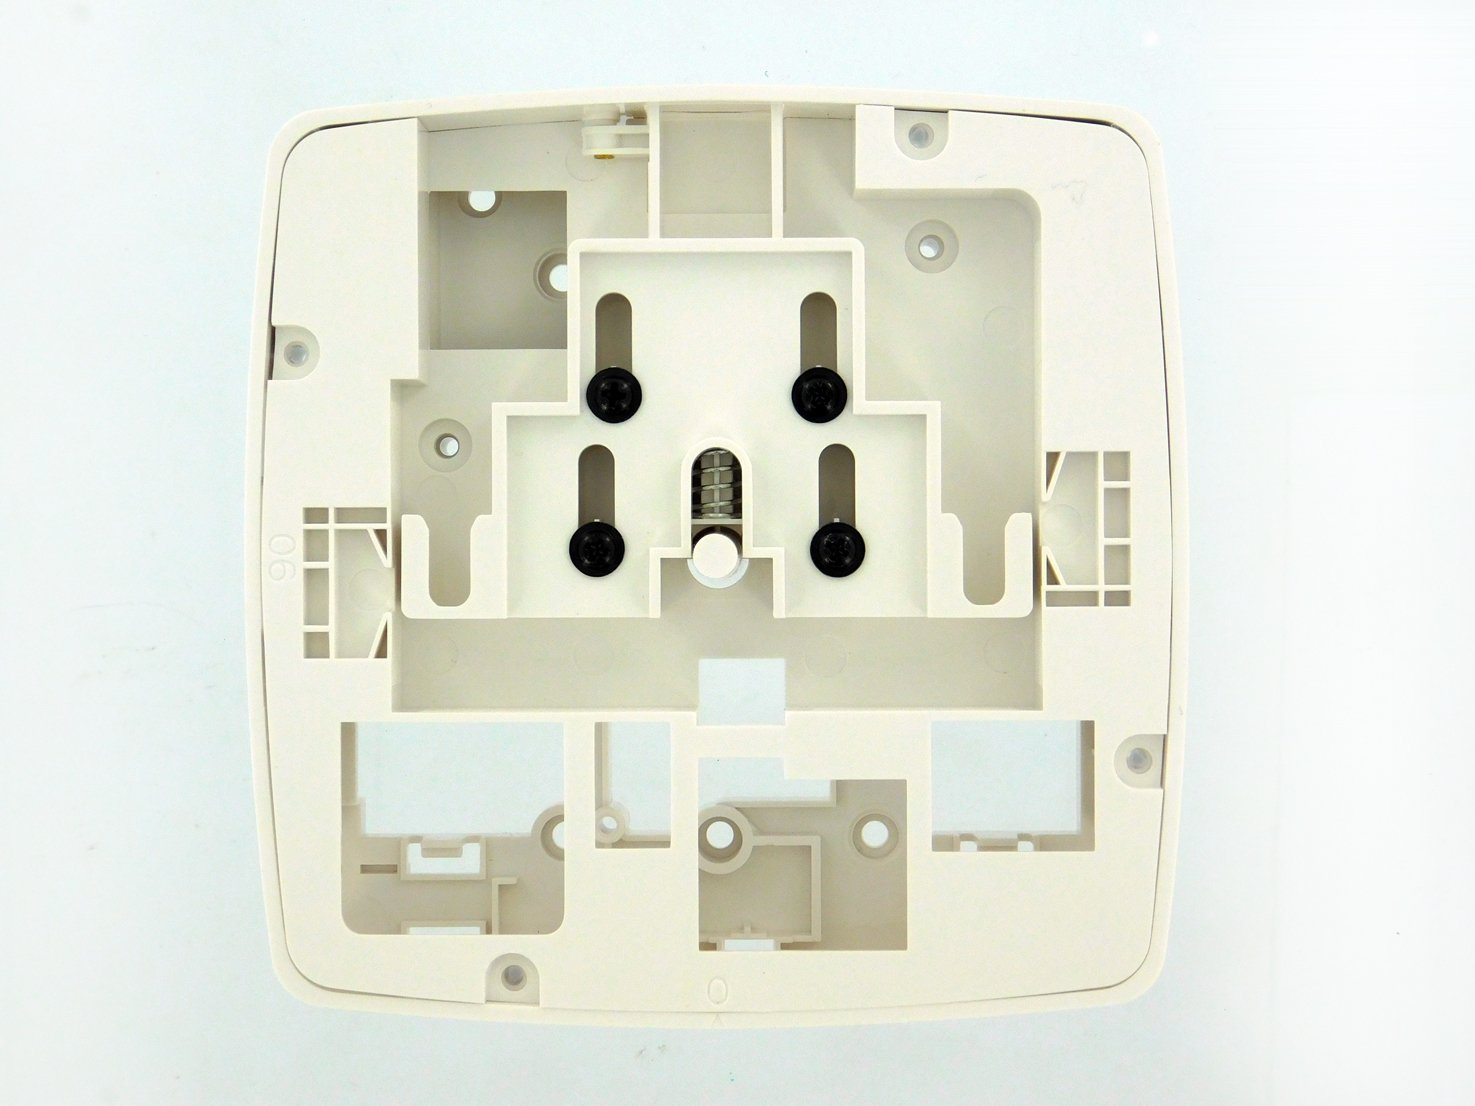 Aruba Networks AP-200-MNT-W2 Wall Mount for Wireless Access Point